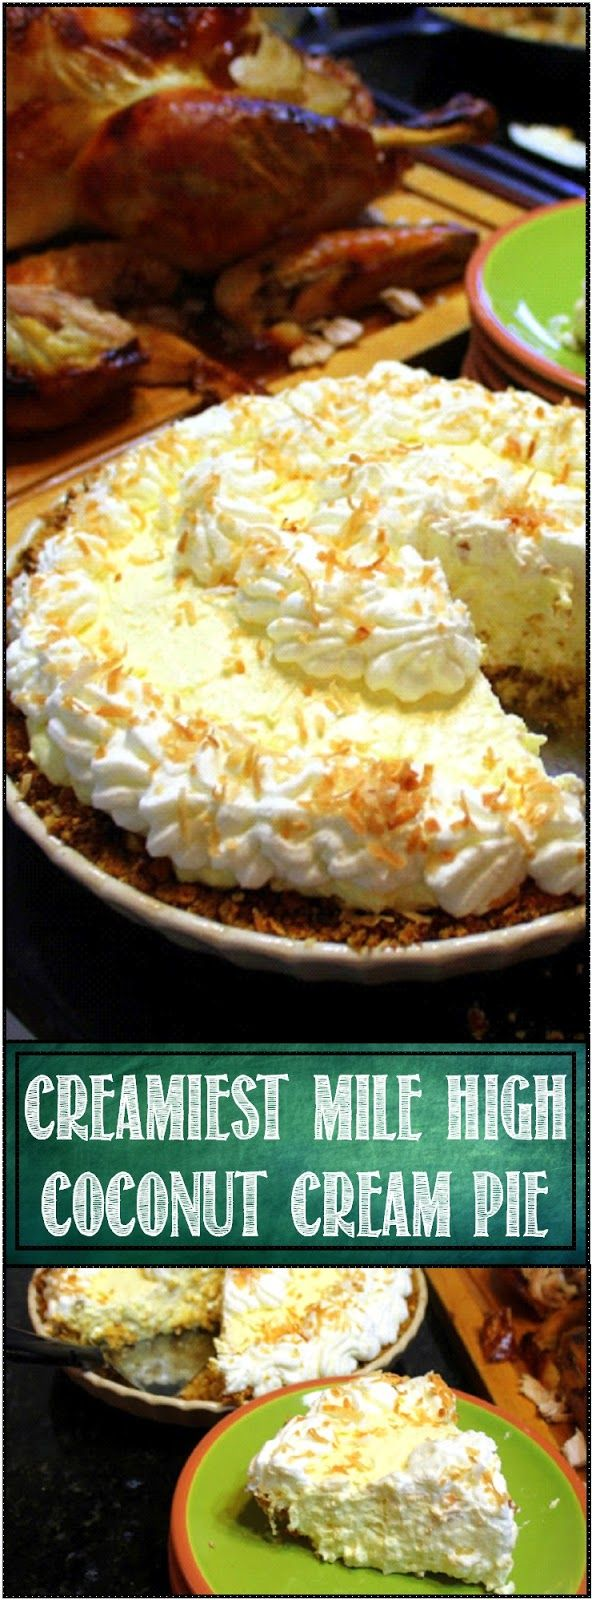 Creamiest Mile High COCONUT CREAM PIE (and Easiest) - 52 Holiday Cakes and Pies…